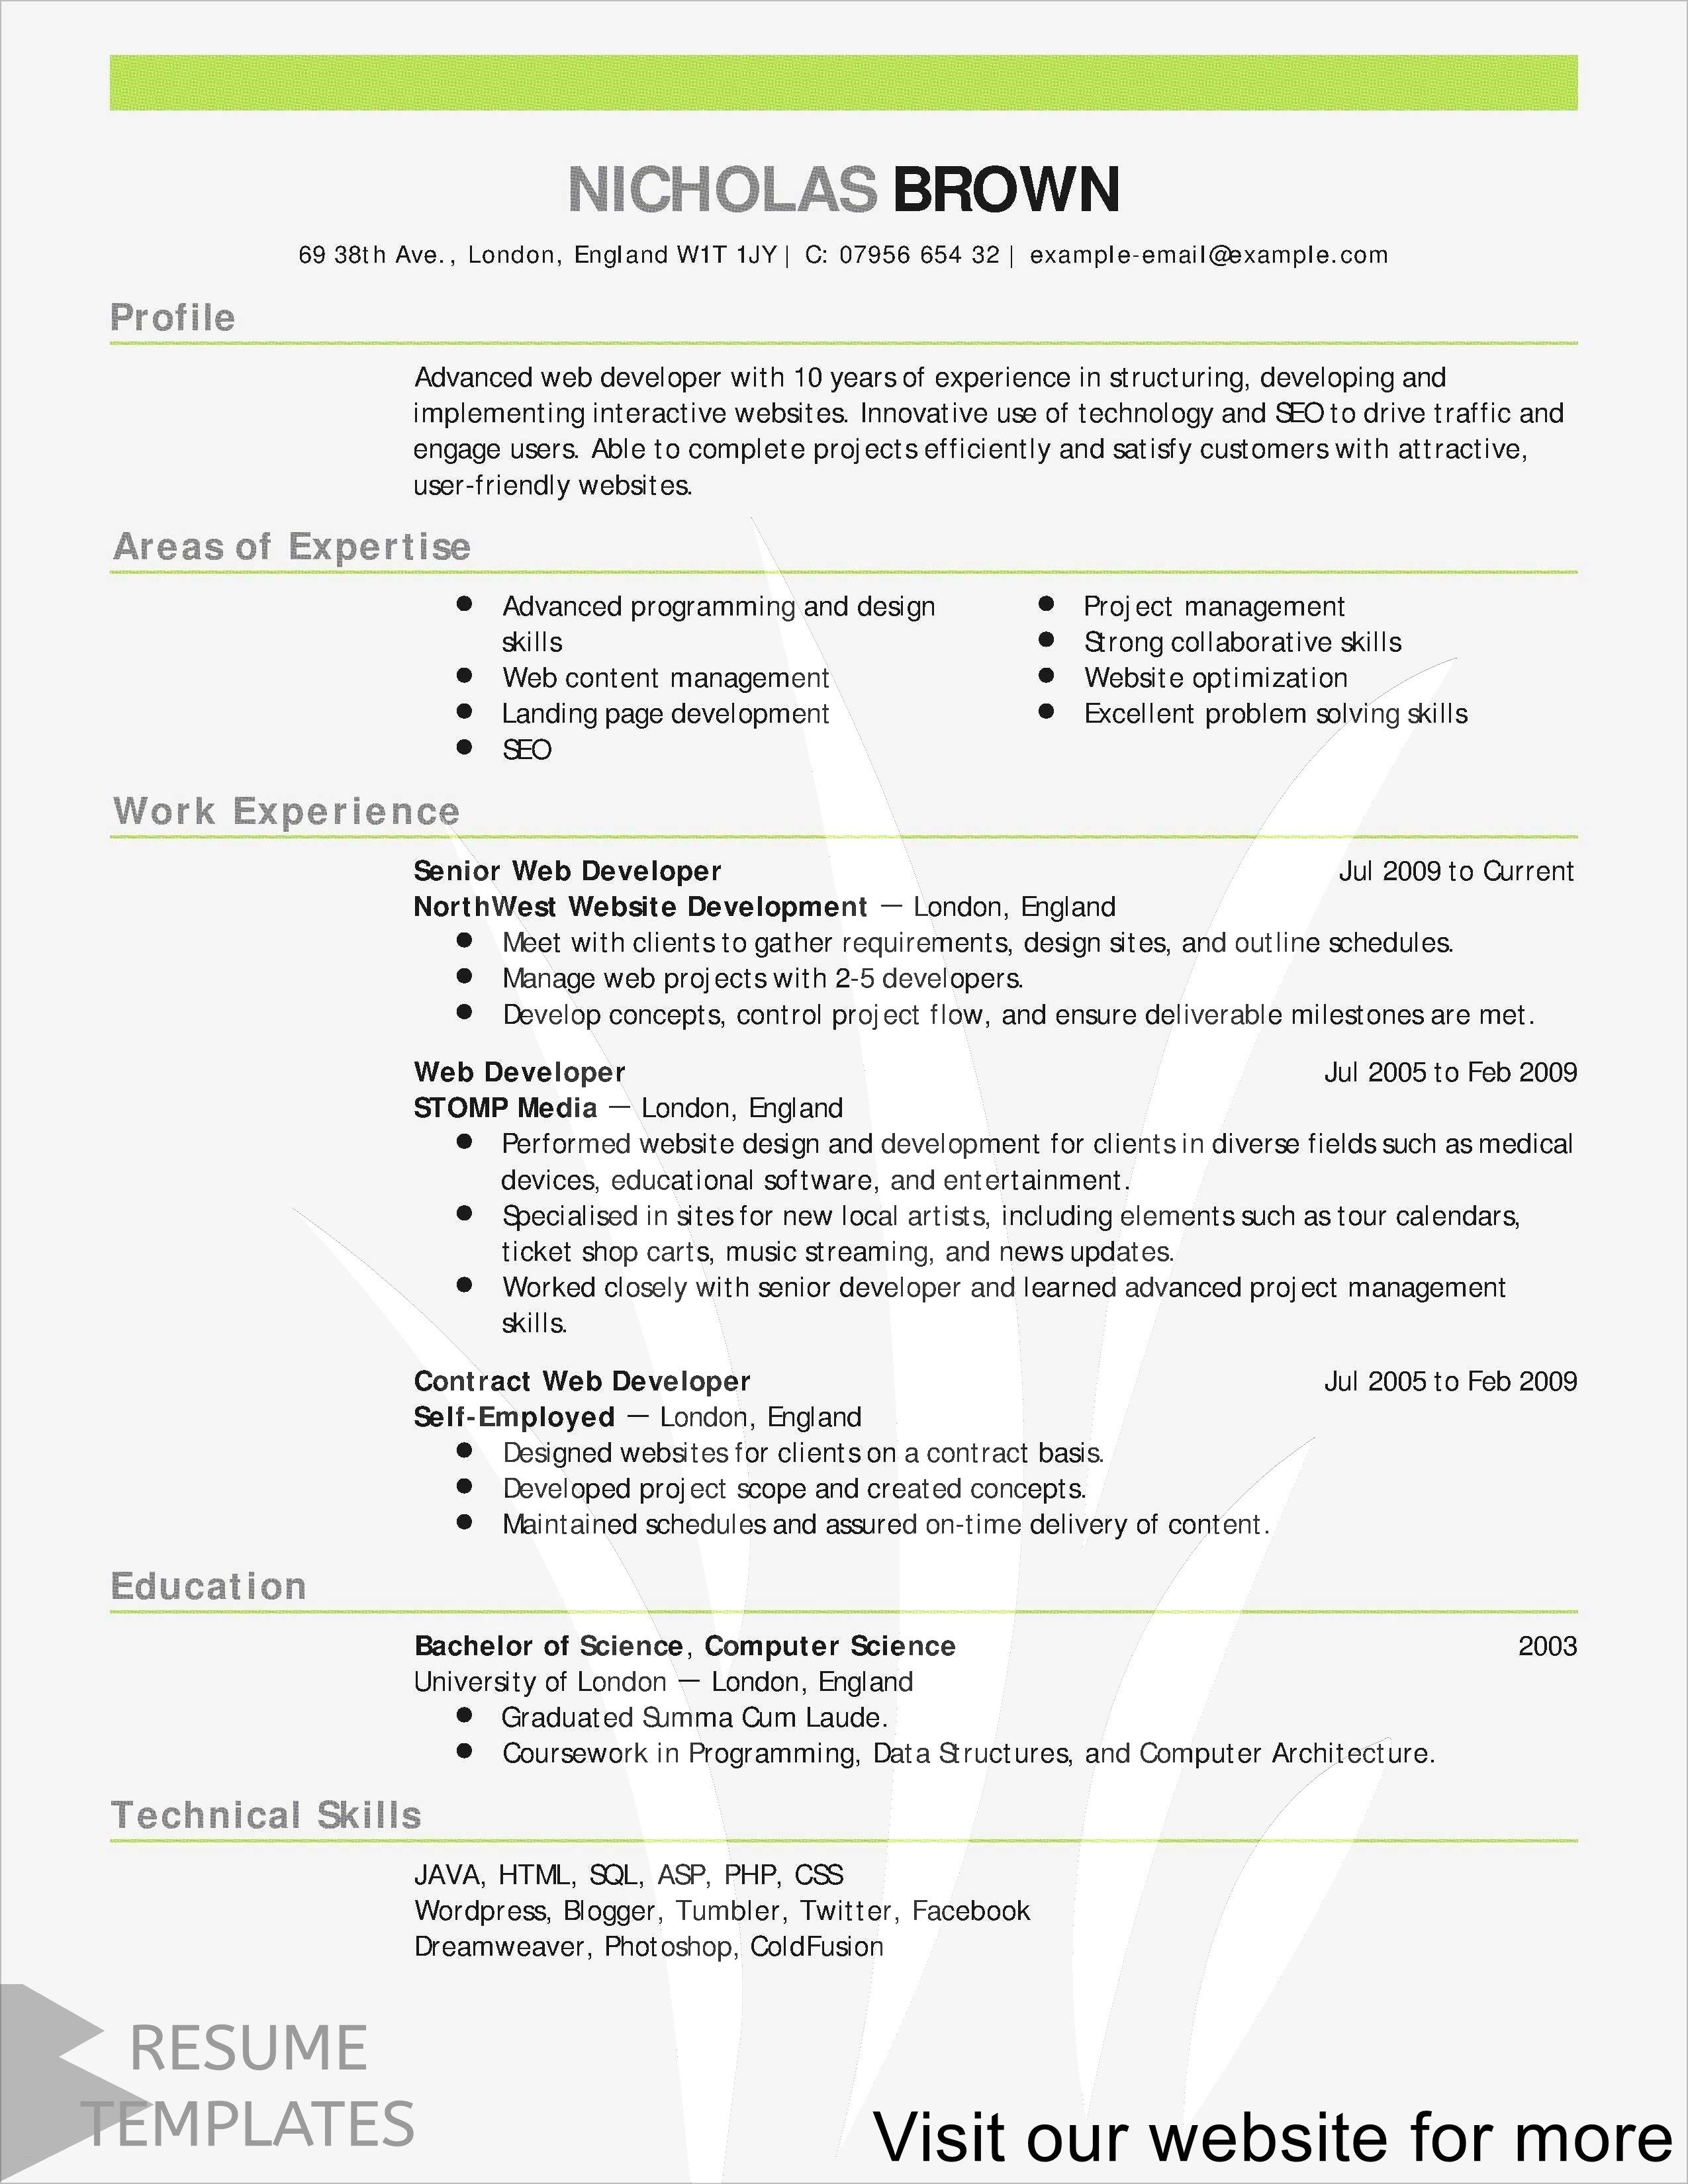 Stay At Home Mom Resume Examples Resume Cover Letter Examples Good Cover Letter Examples Resume Examples